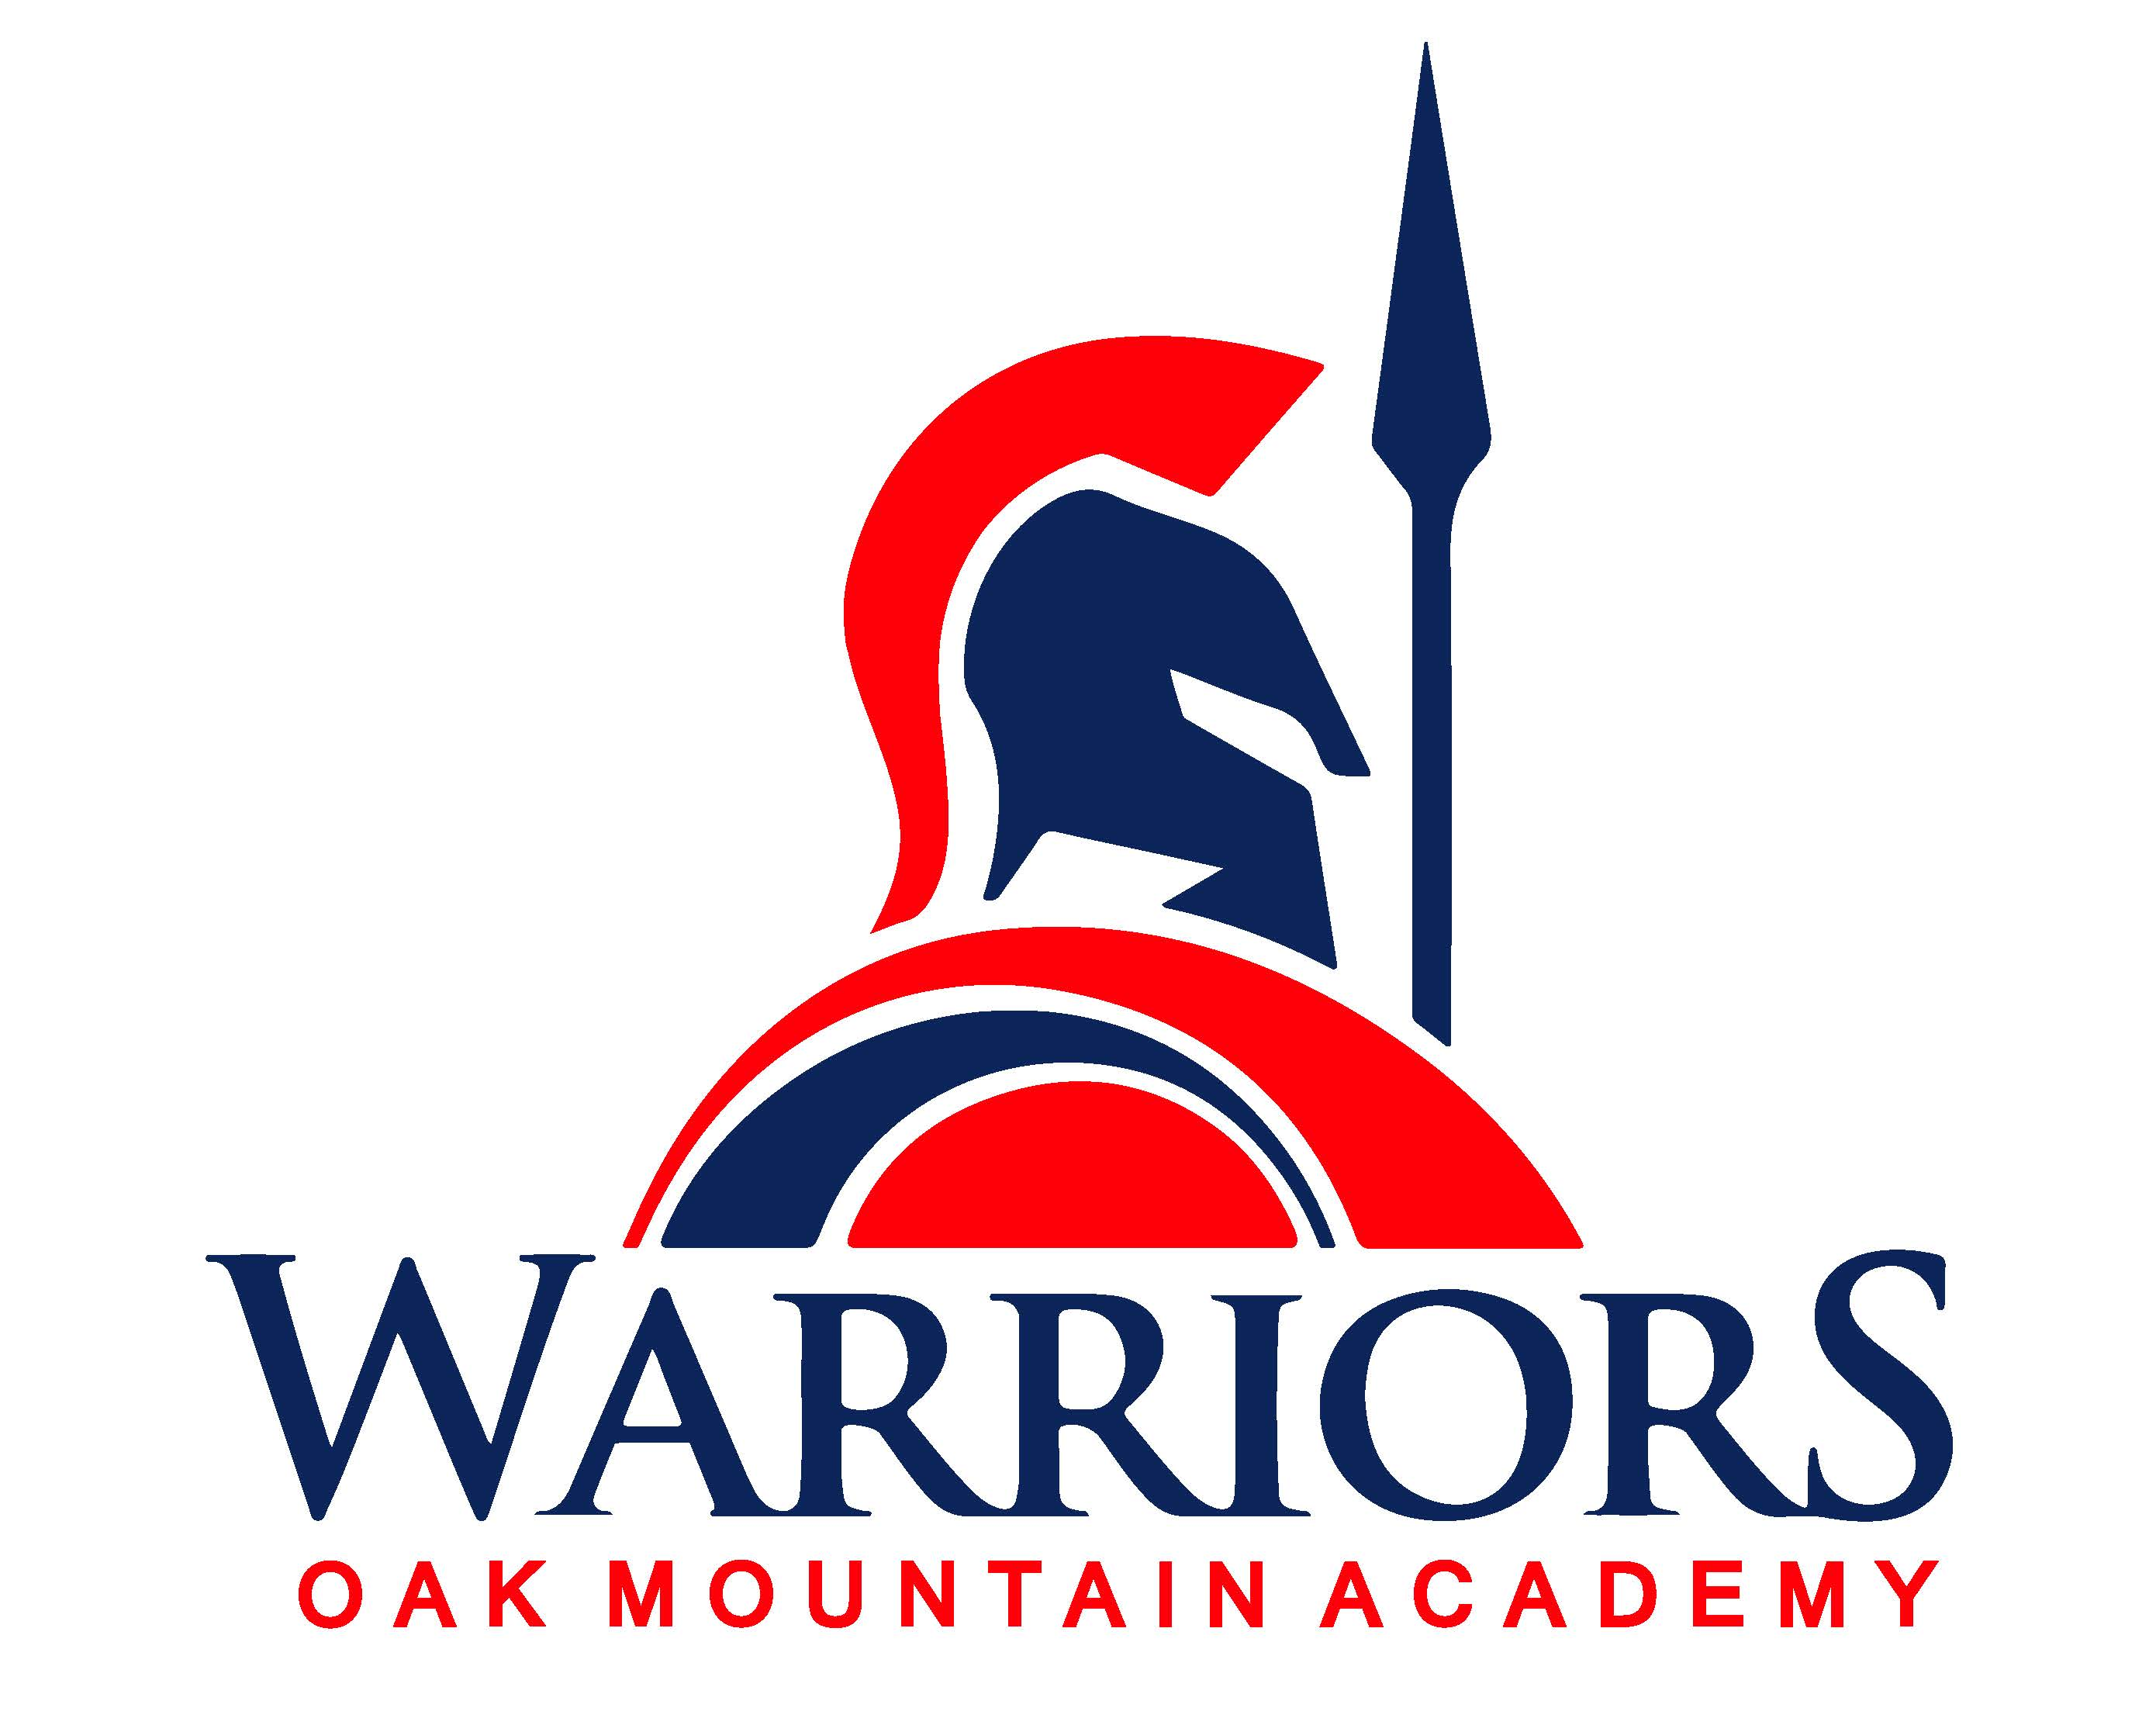 News From The Mountain - Oak Mountain Academy